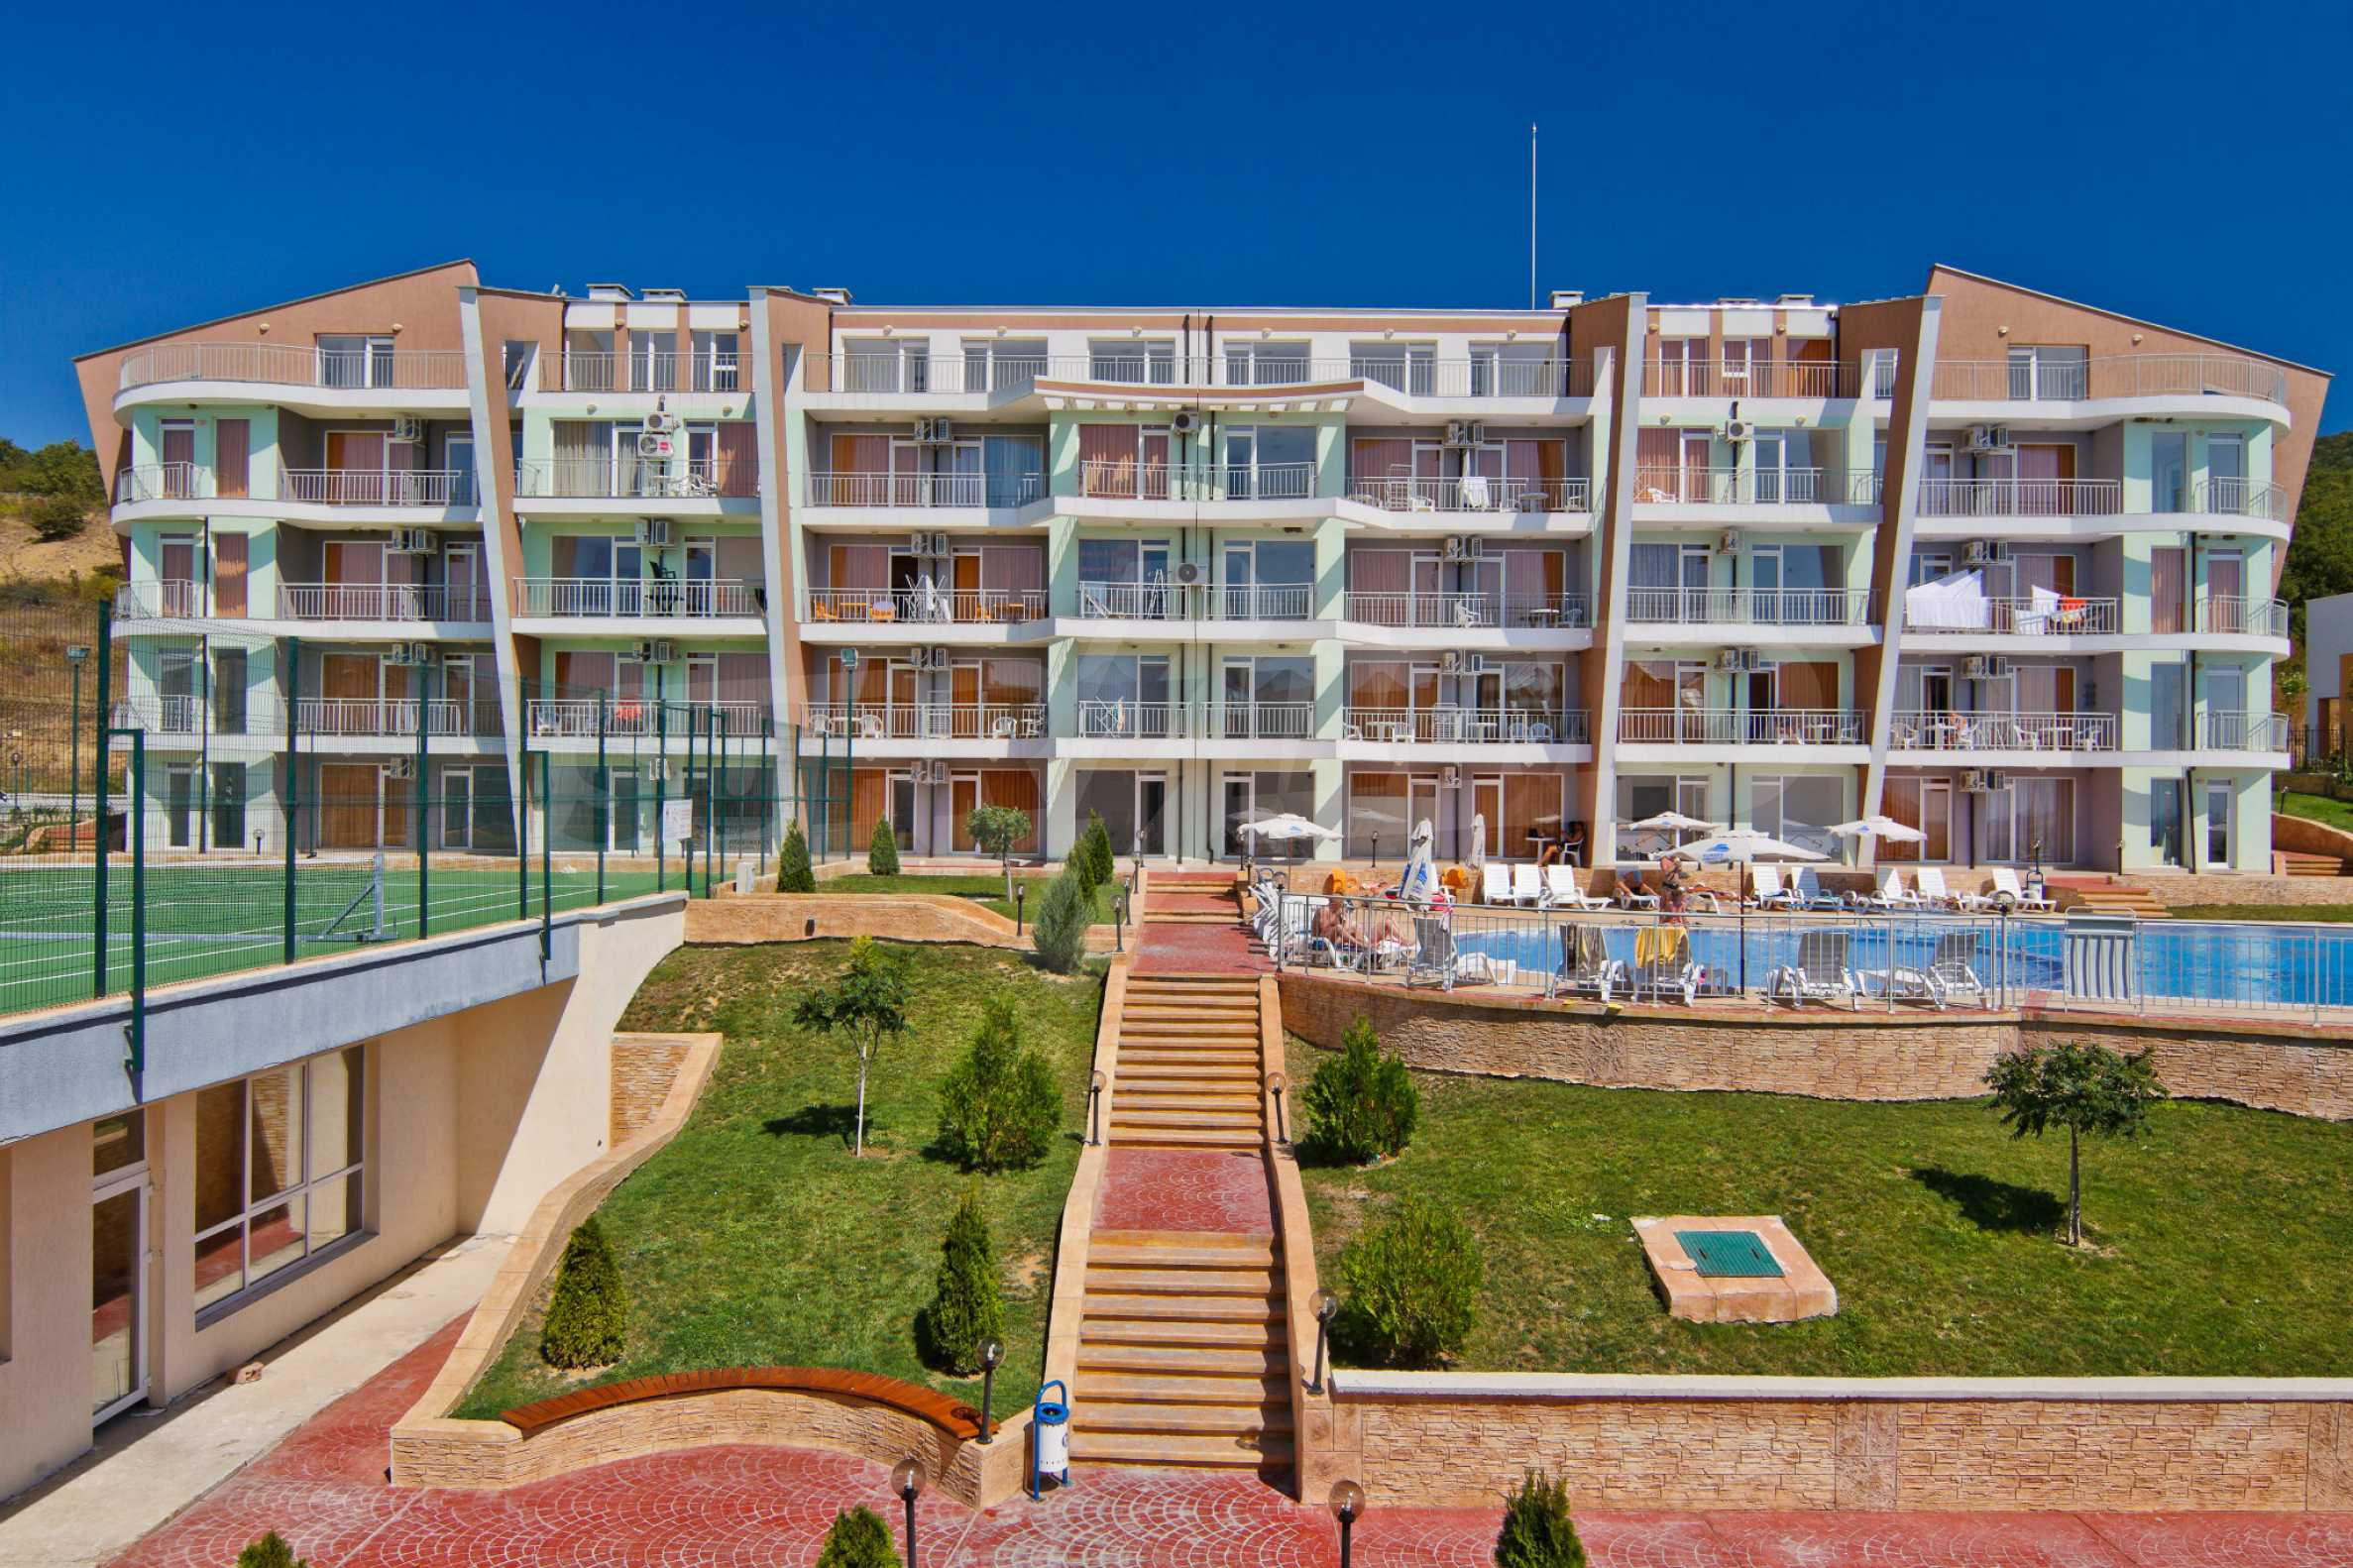 Apartments for sale in Sunset Kosharitsa complex near Sunny Beach 4